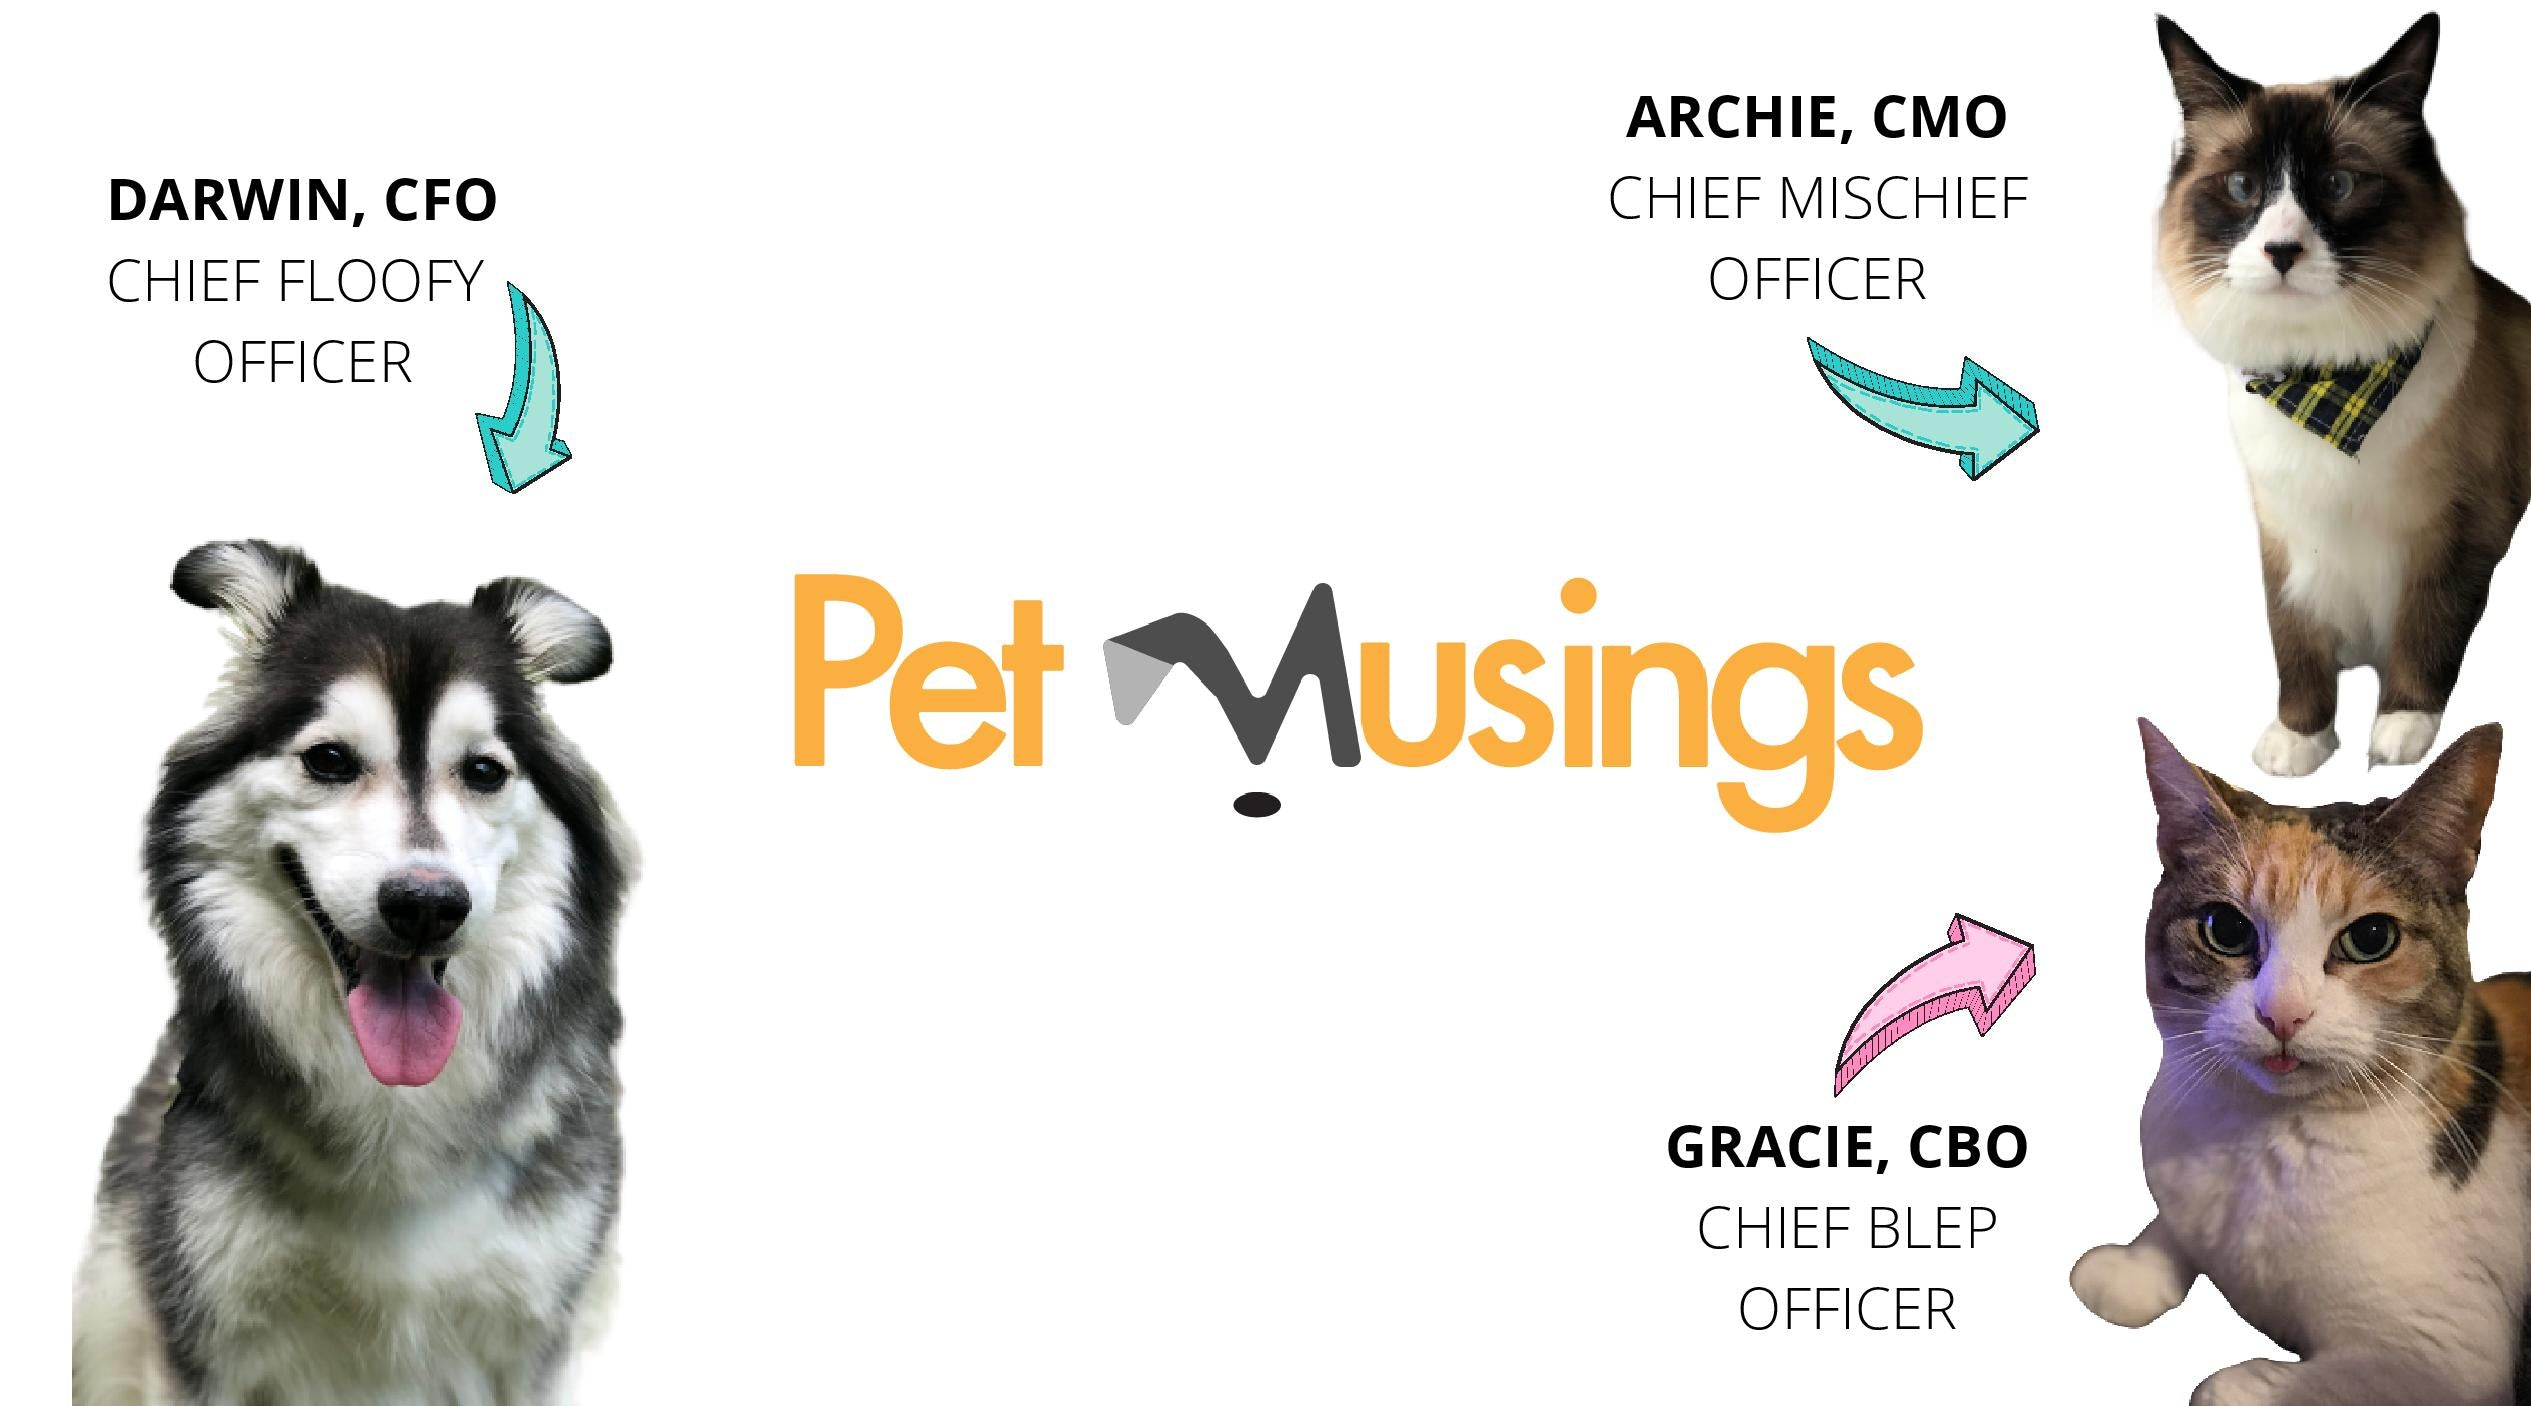 Pet Musings team photo with one dog, Darwin, and two cats, Archie and Gracie